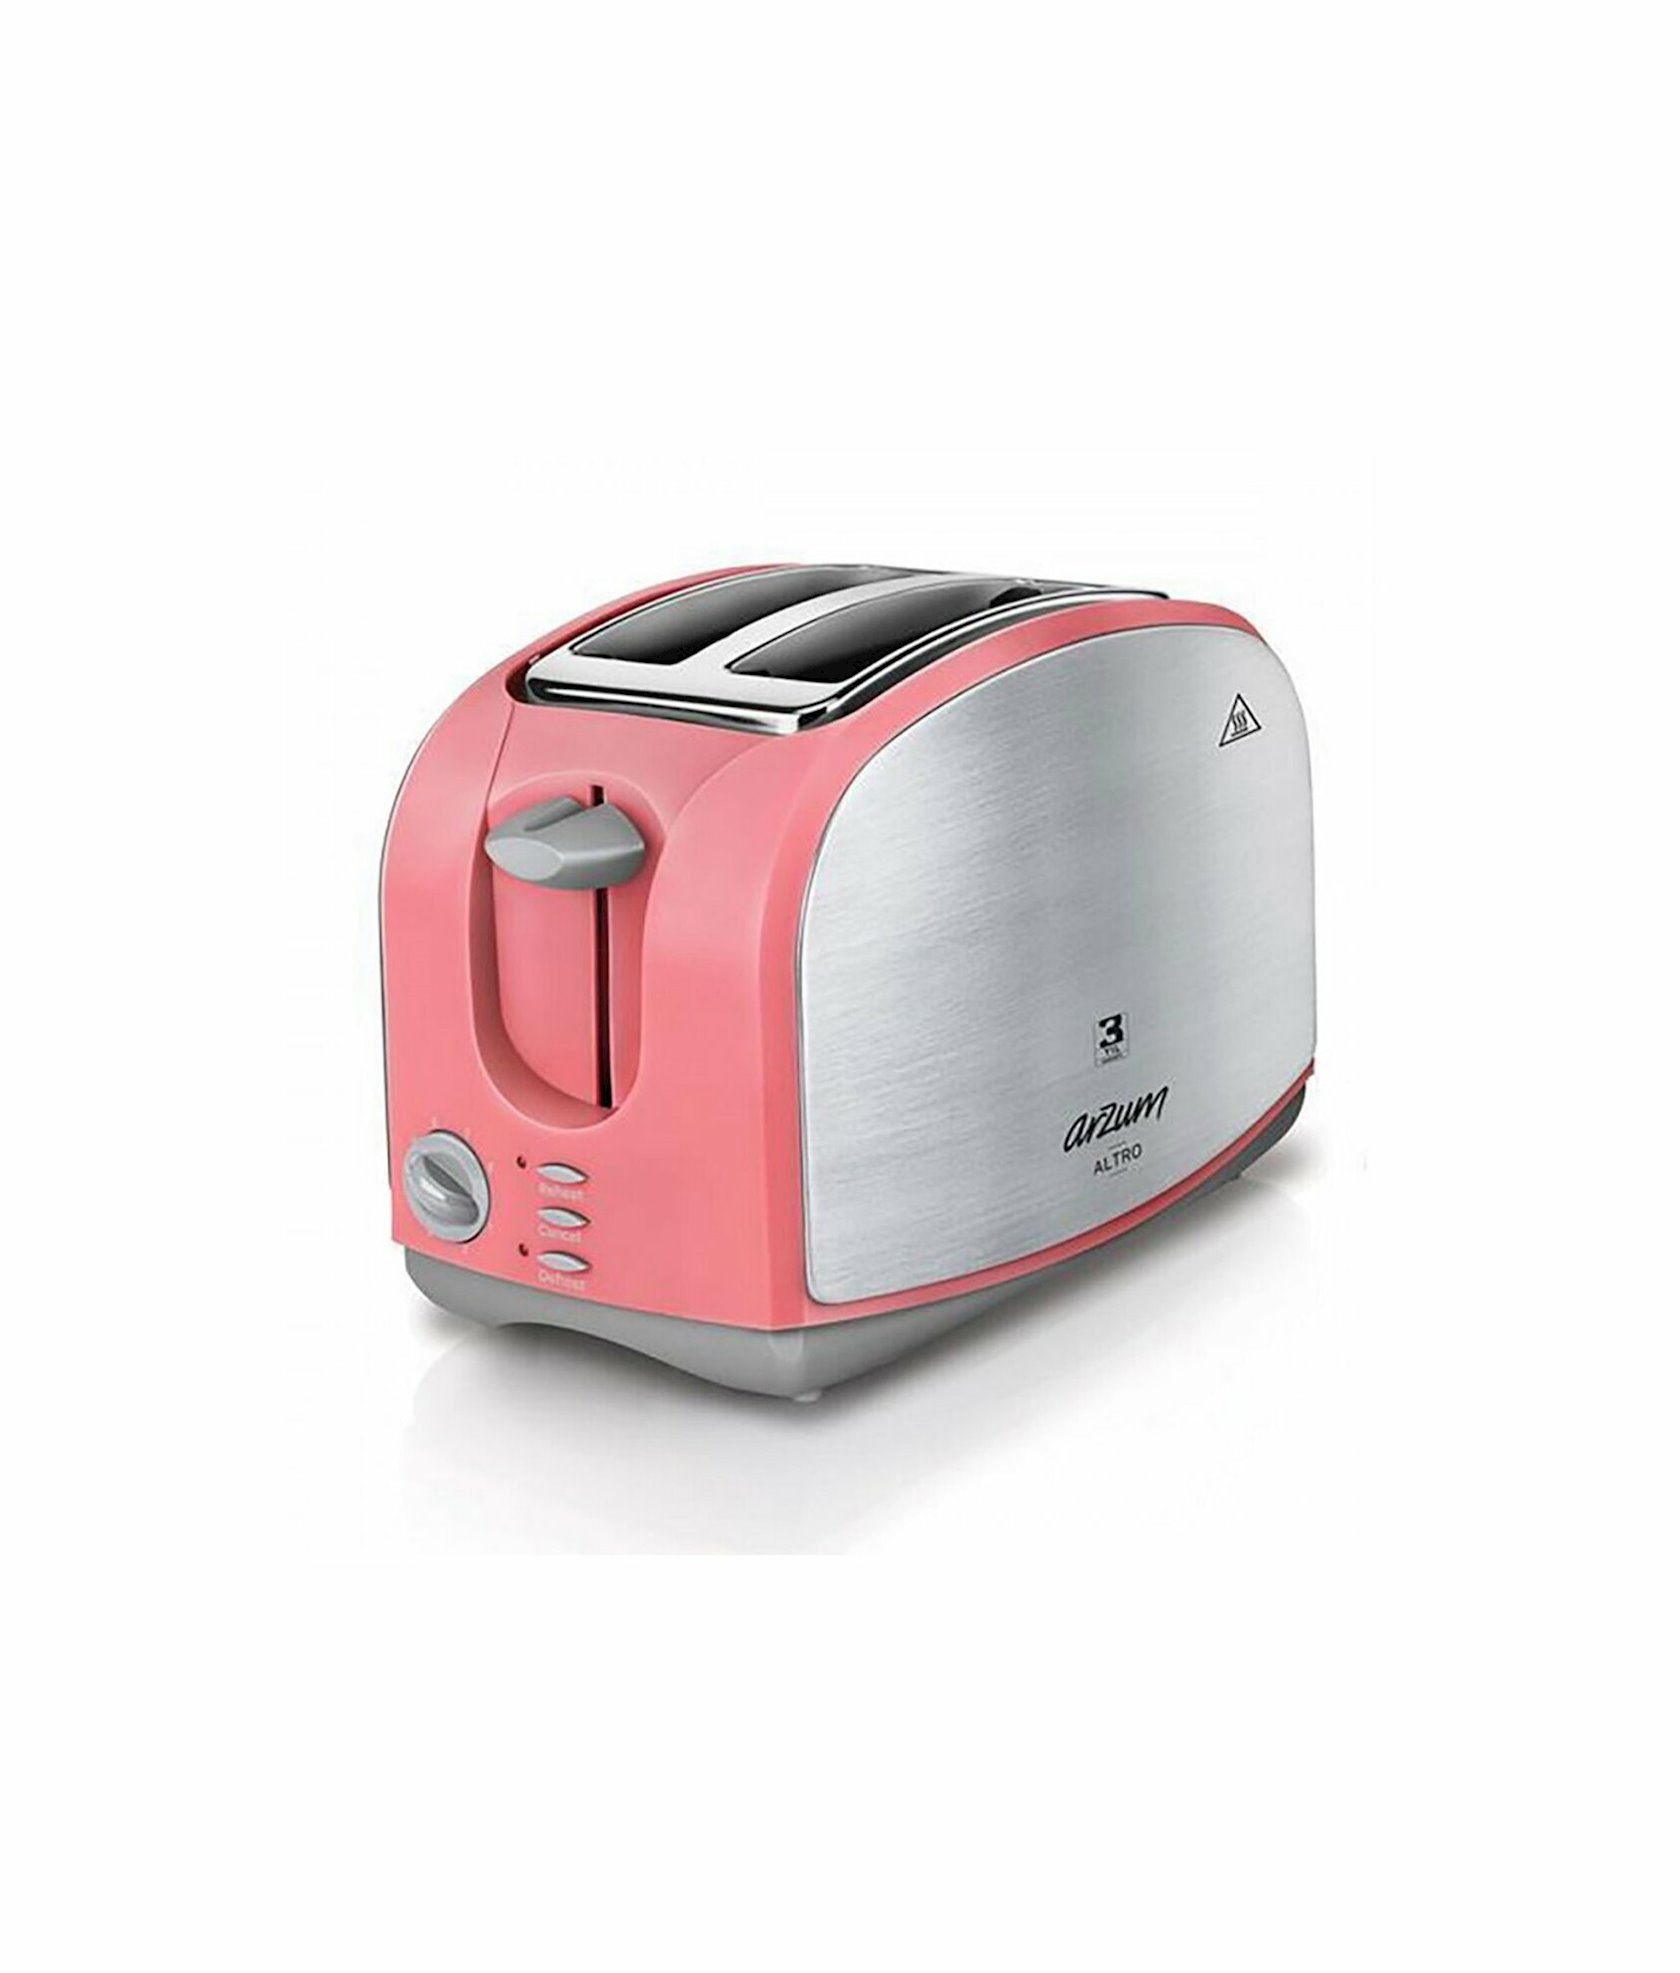 Toster Arzum AR2014 Altro Pink